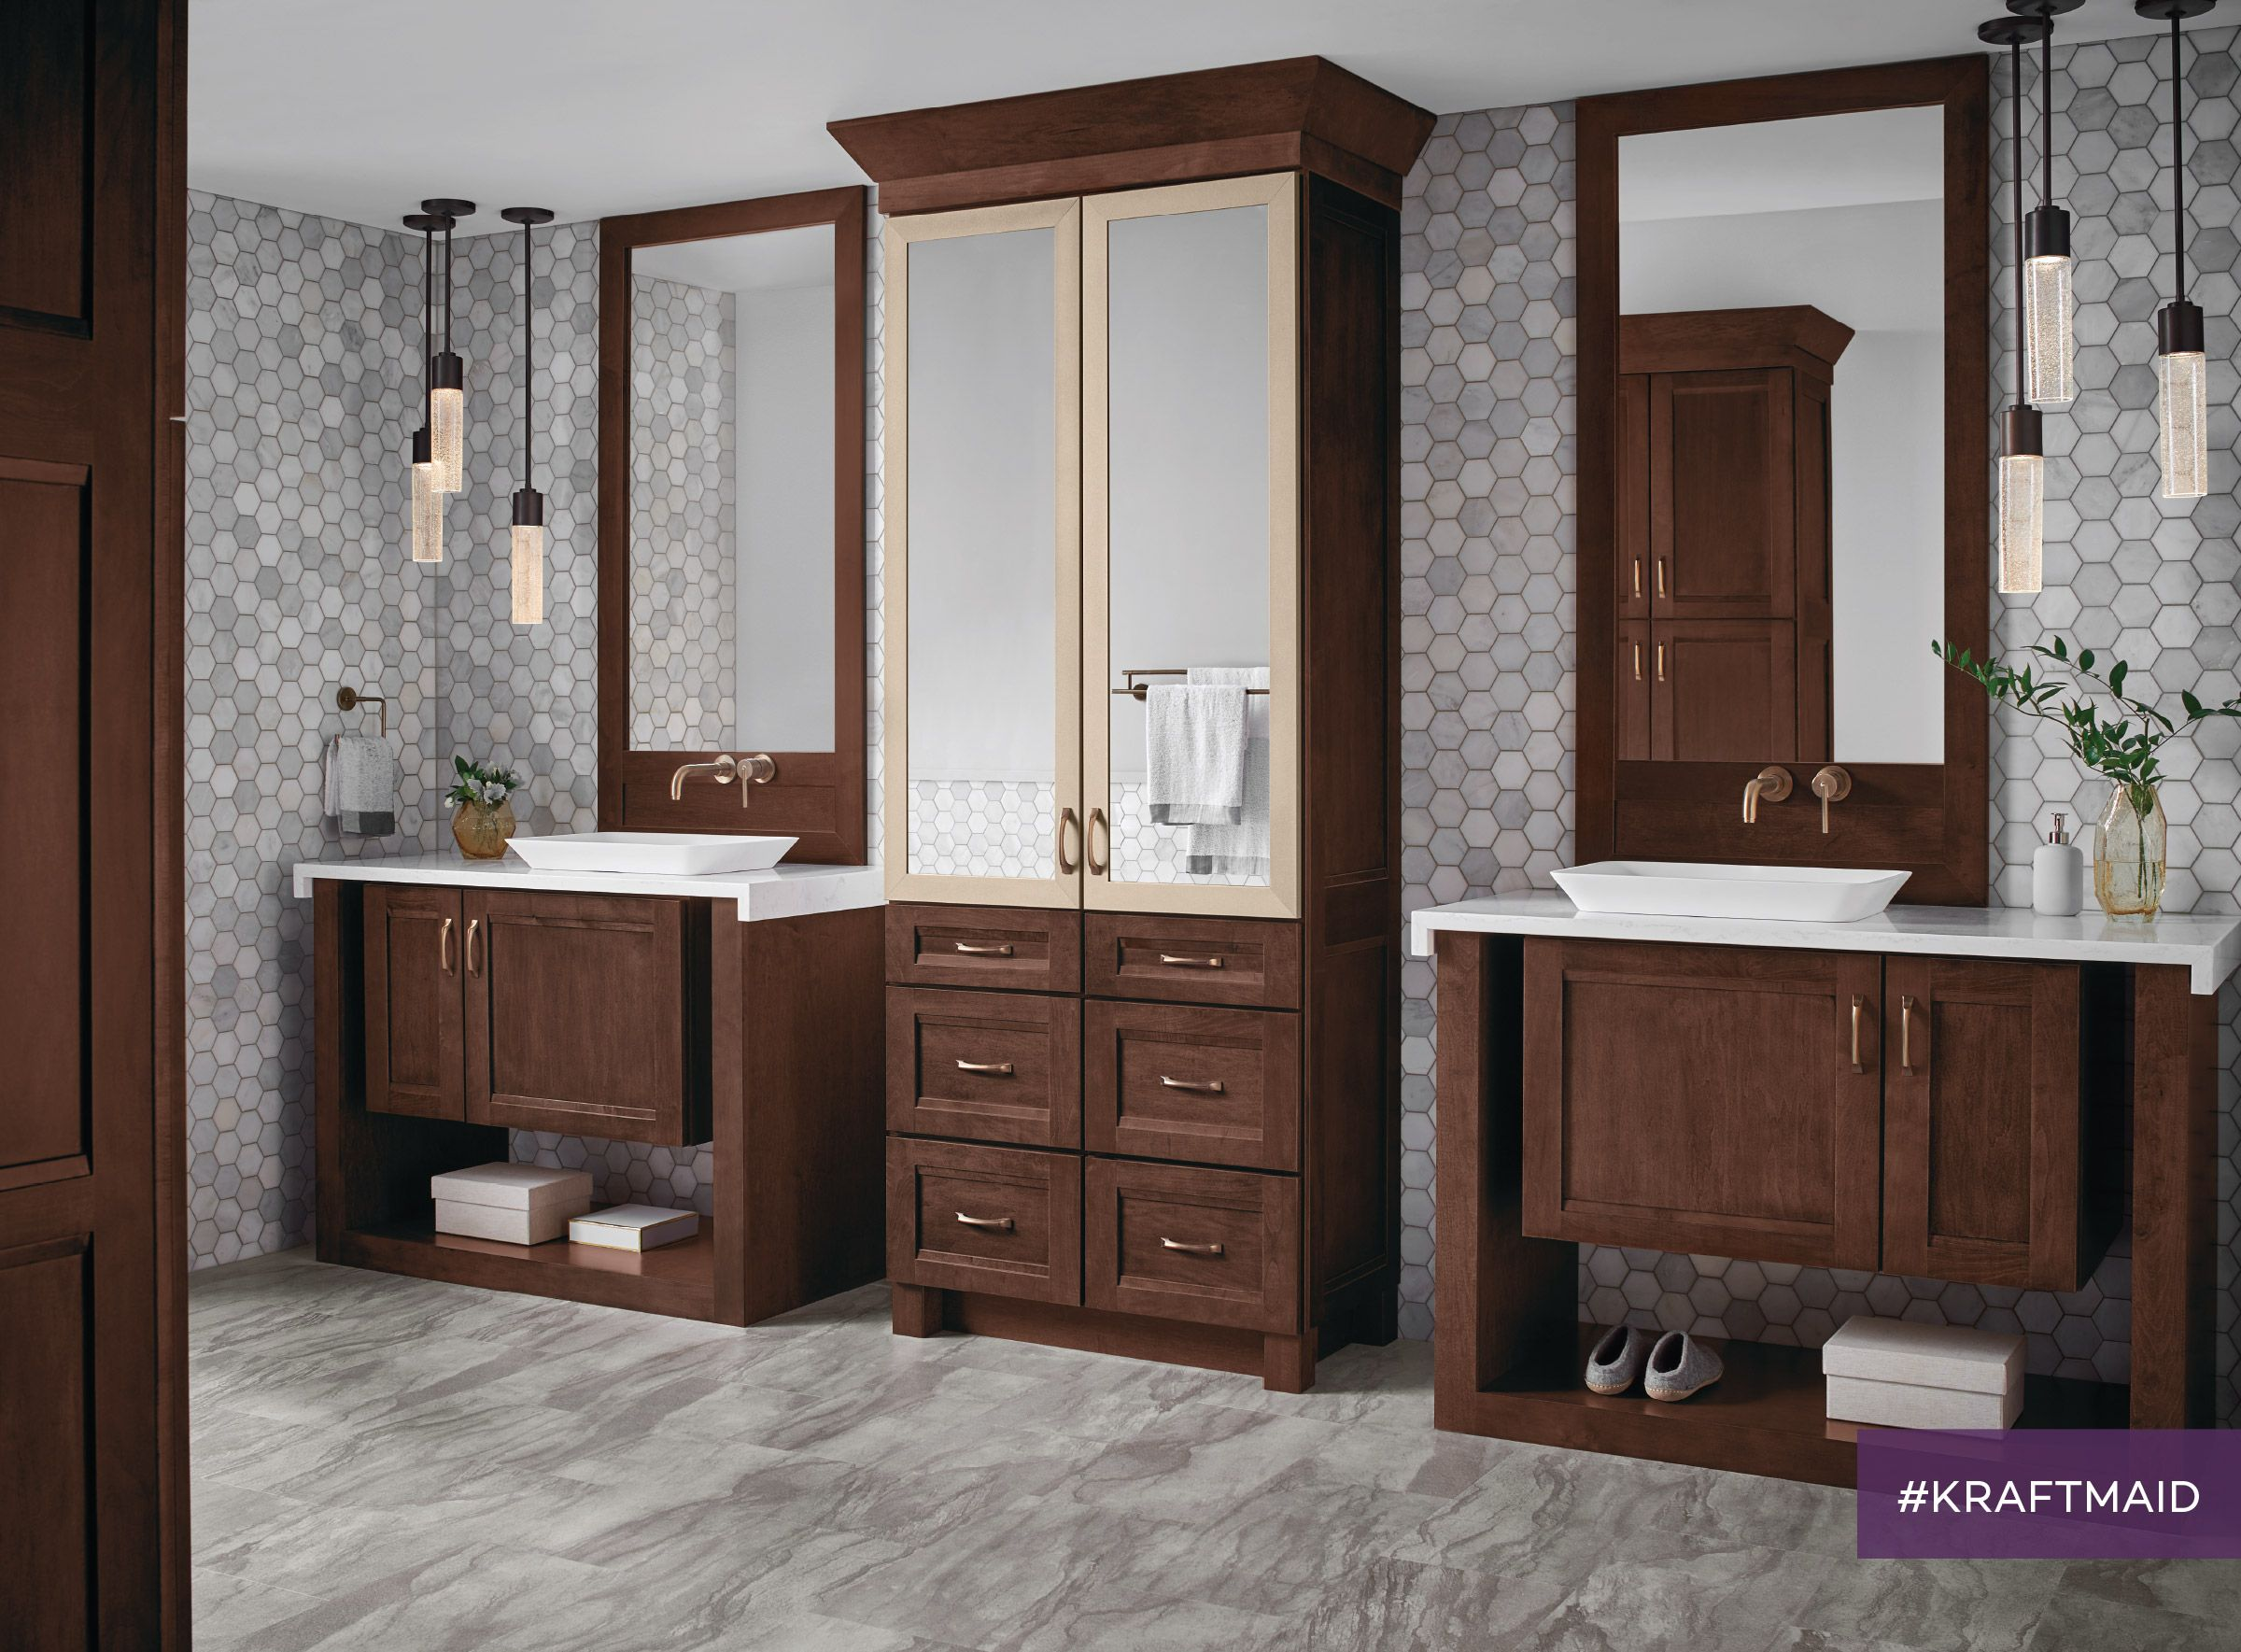 With Floor To Ceiling Linen Cabinets And Two Vanities This Bathroom Is Both Stylish And